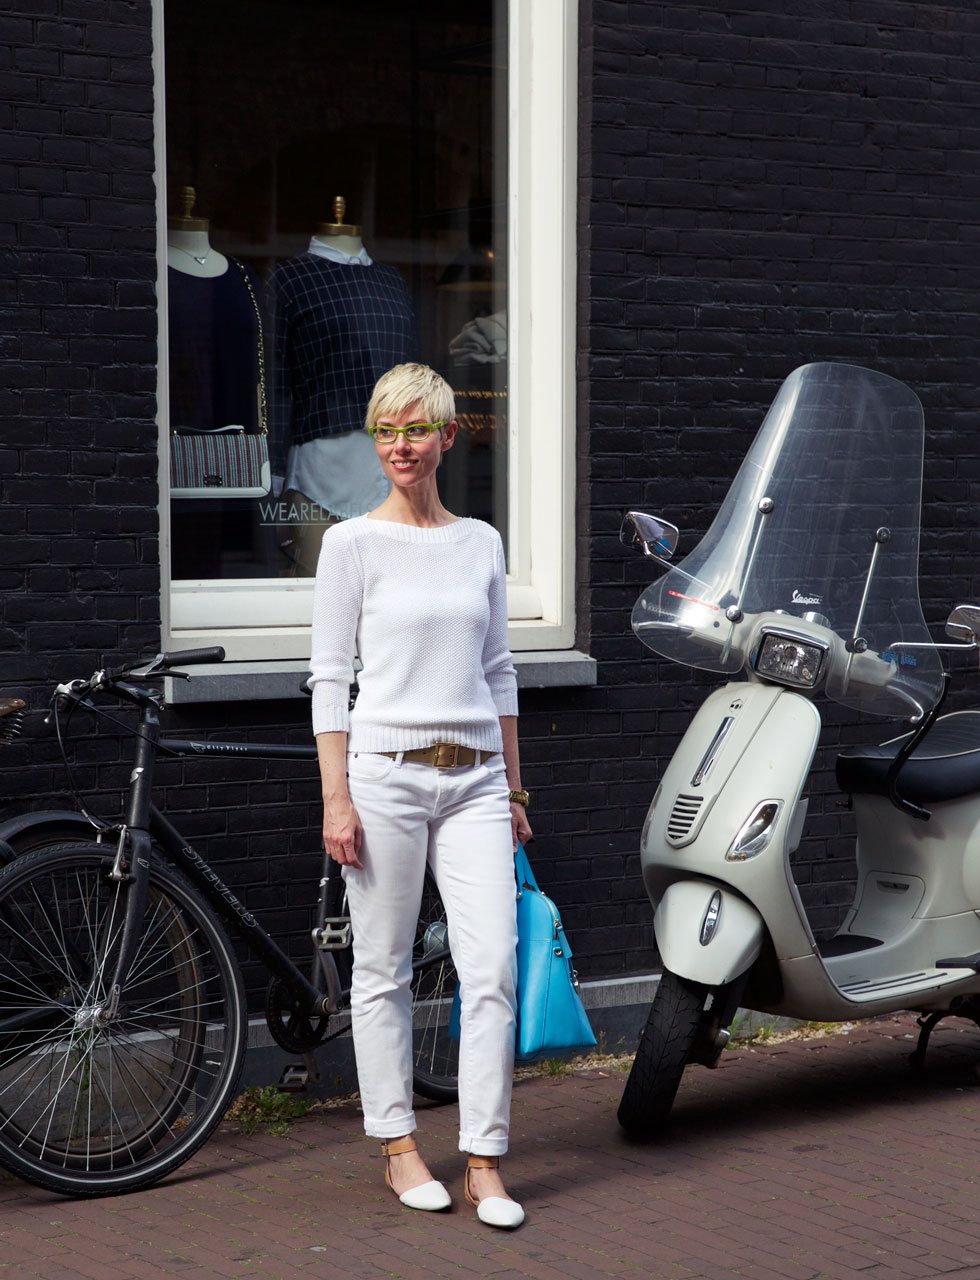 White Column - Vespa